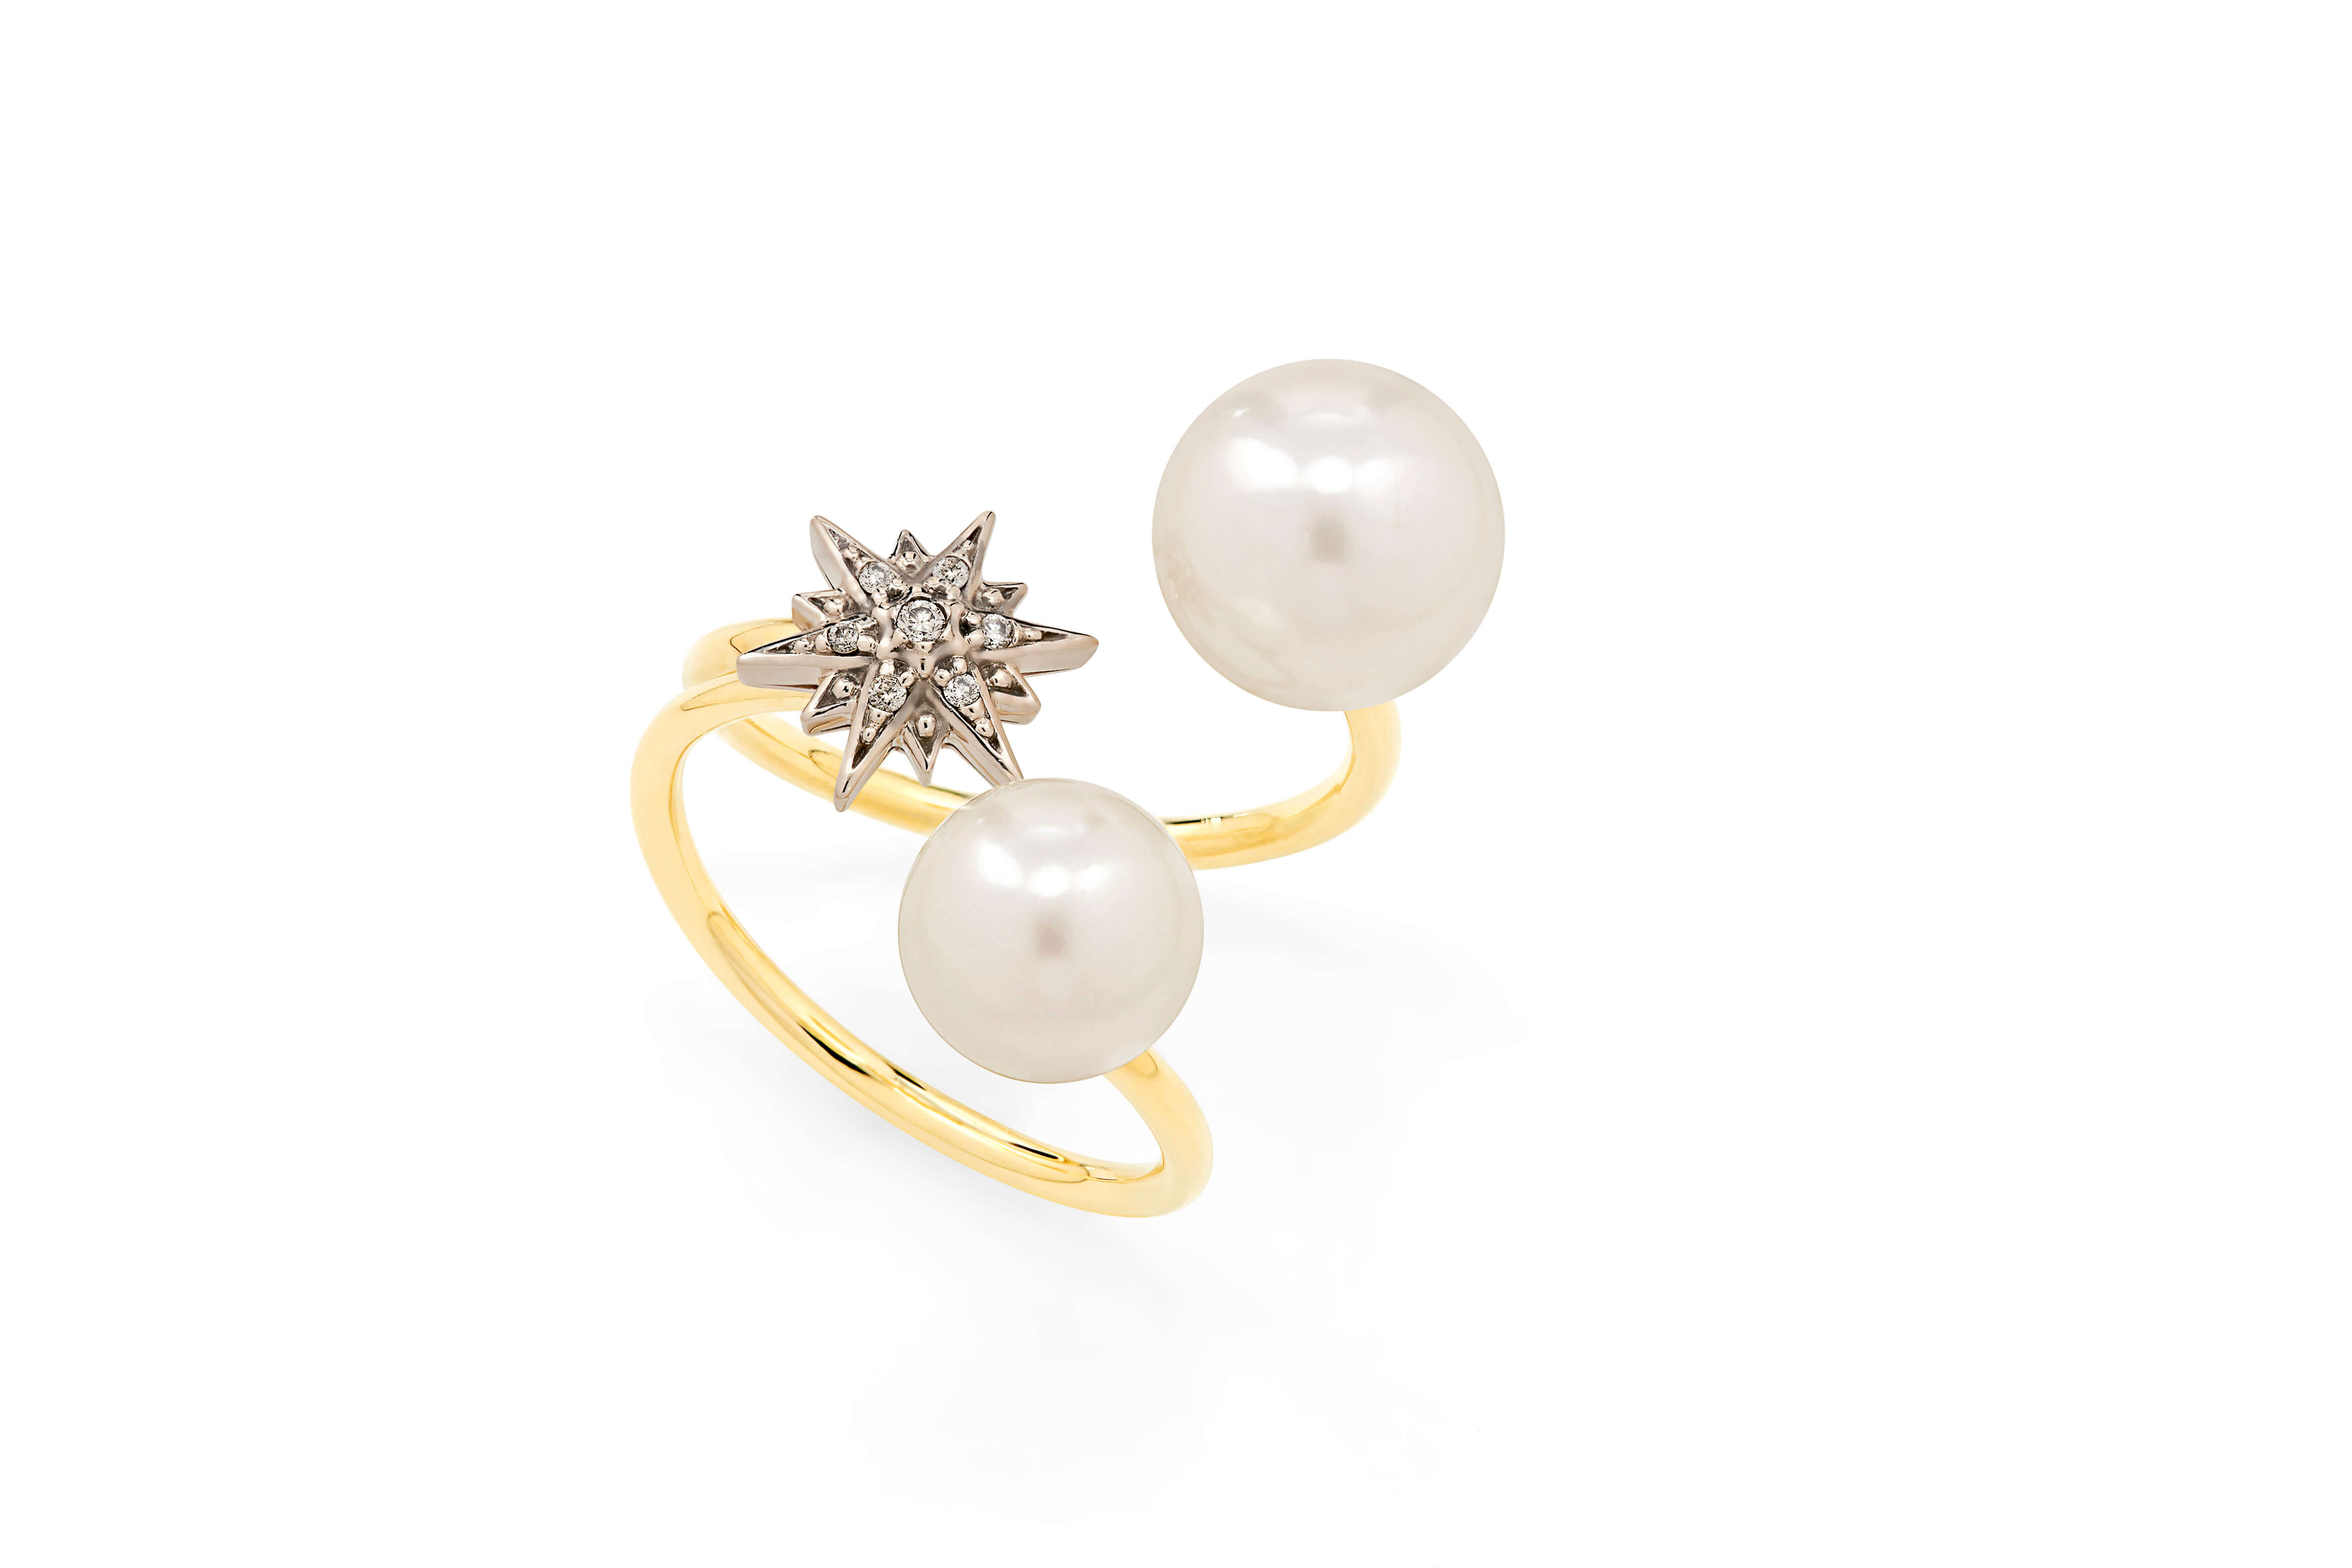 Pearls_of_Genesis_H.Stern_-_ring_in_18K_gold,_pearls_and_diamonds_(A2P_205194)